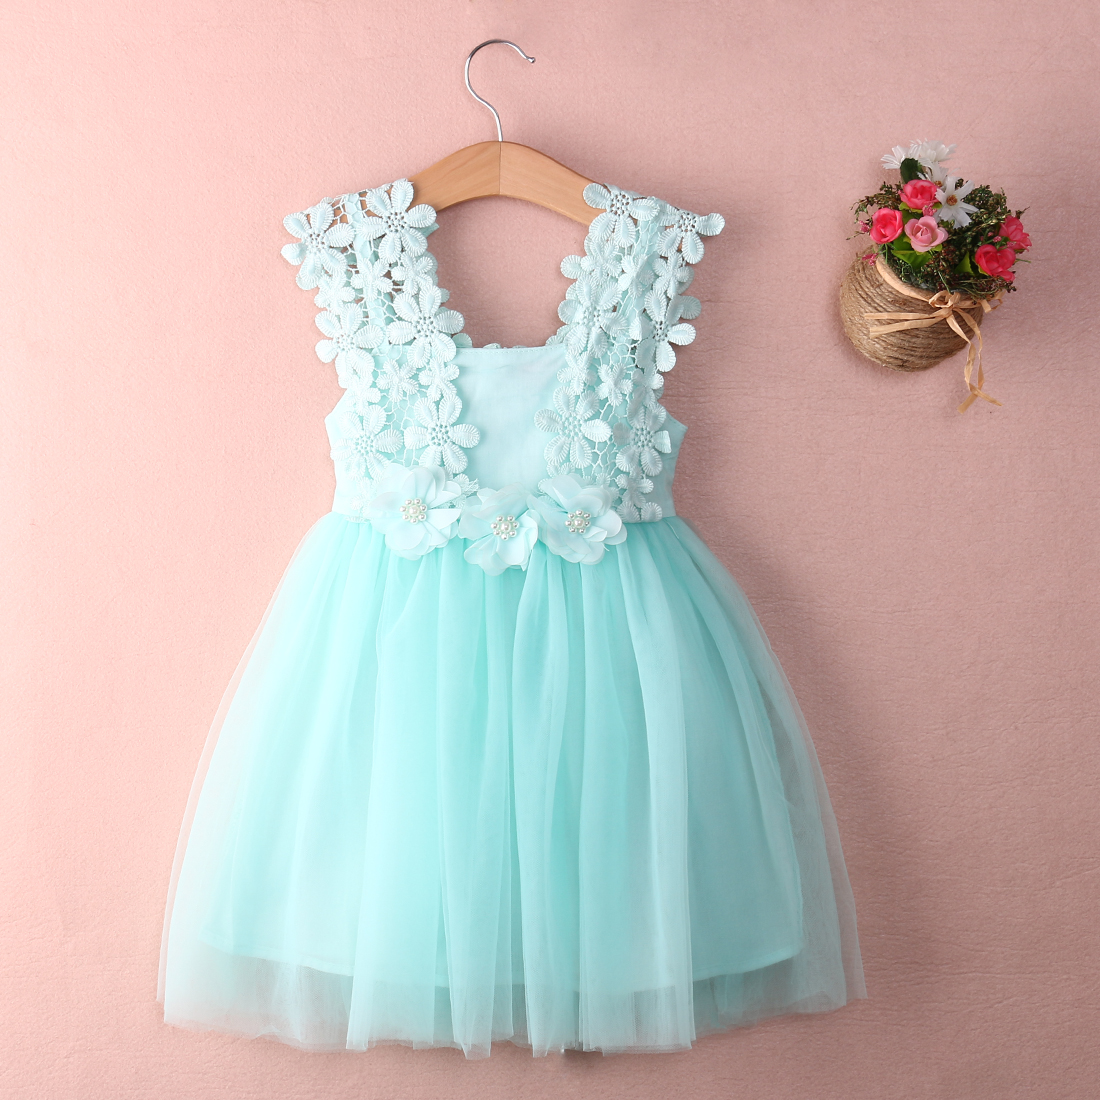 Baby Girl Princess Lace Tulle Flower Fancy Backless Gown Formal ...